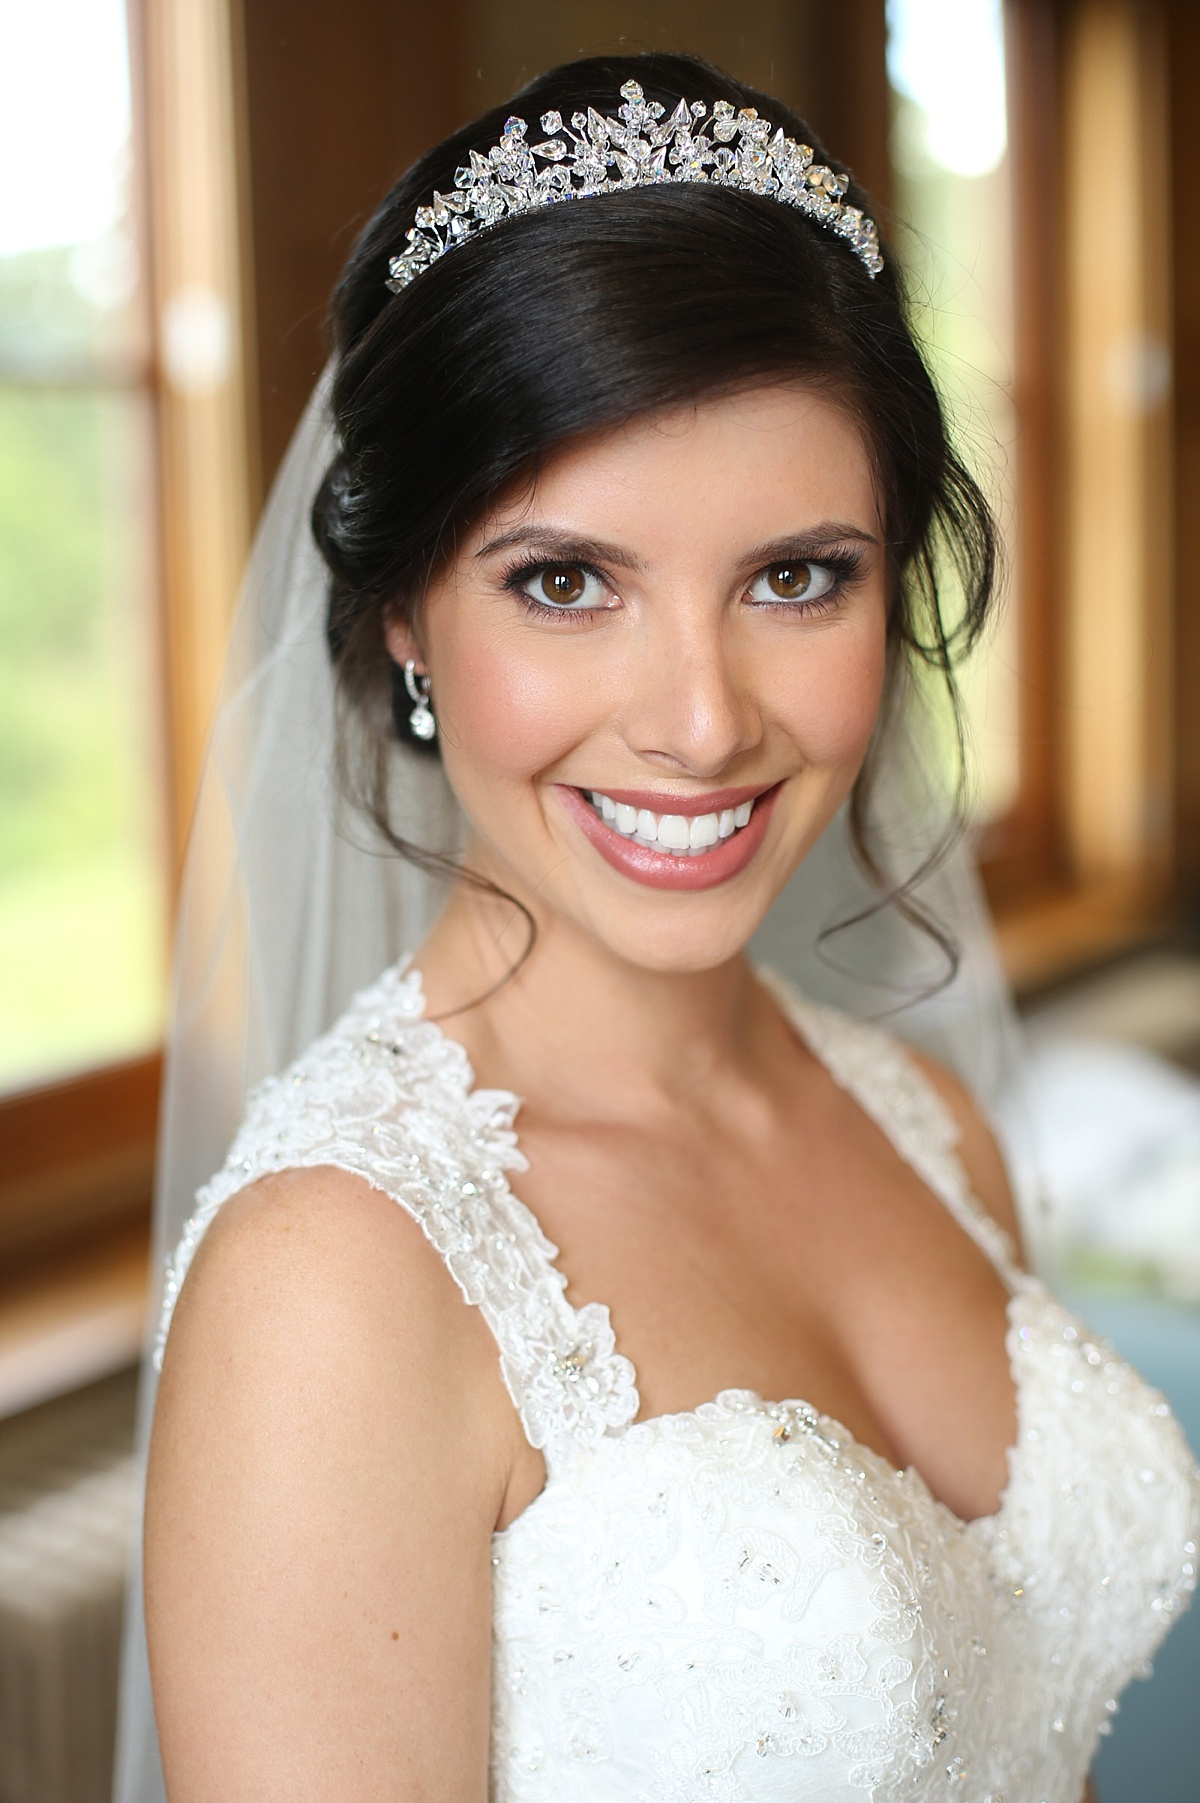 best makeup artist,best bridal makeup artist,best wedding makeup artist,best makeup